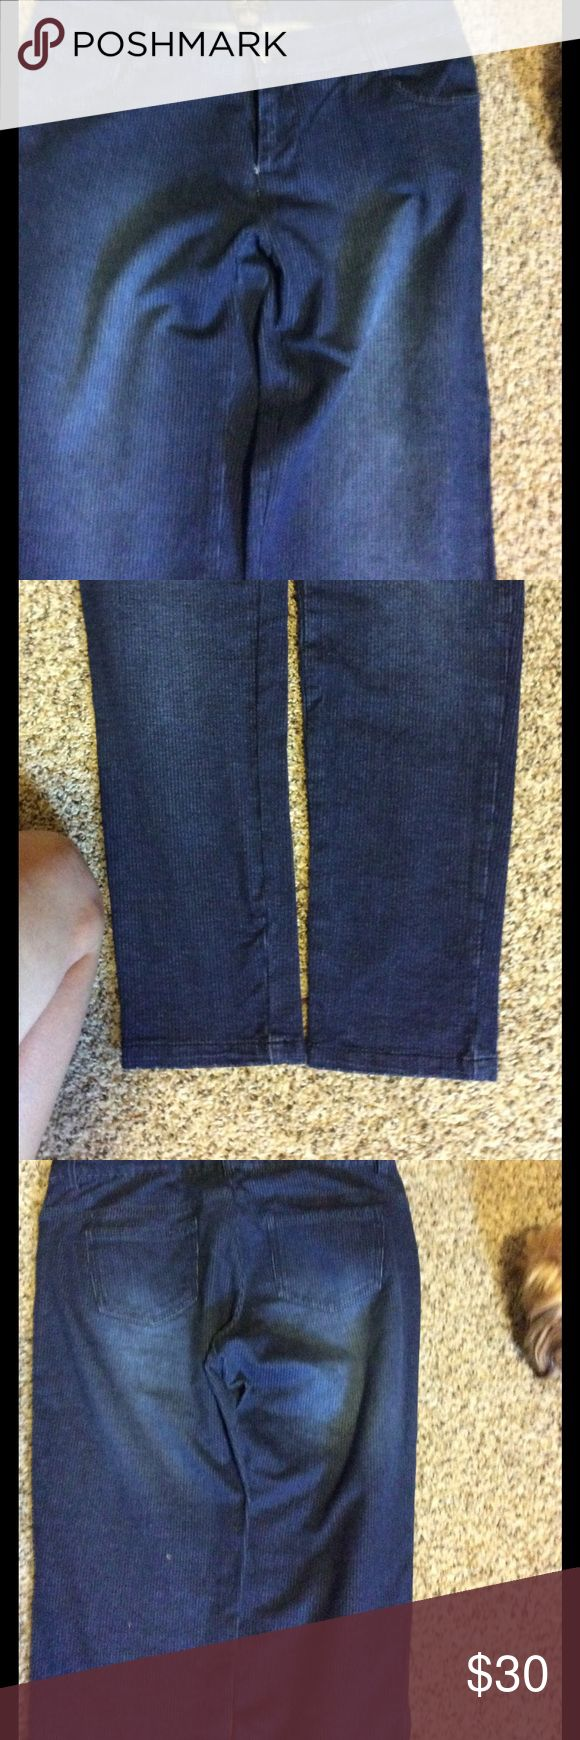 Jeans Used a few times great condition serena williams Jeans Straight Leg